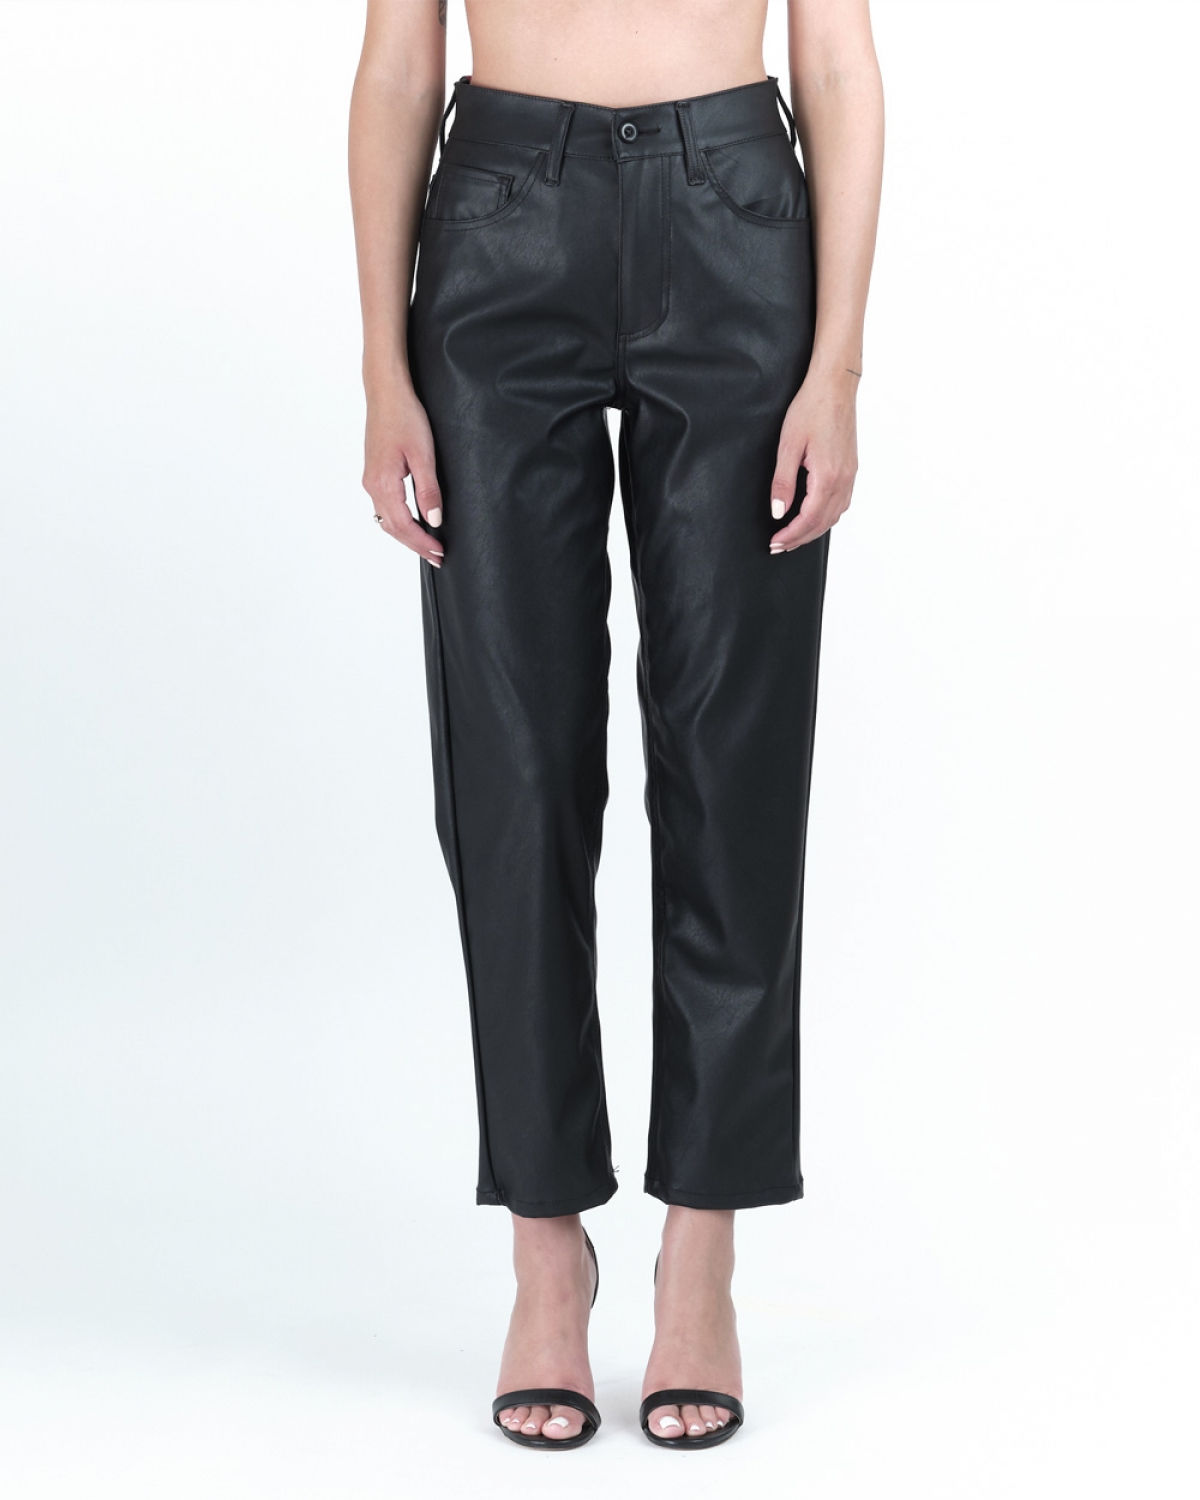 Barbara Black Faux-Leather Trouser